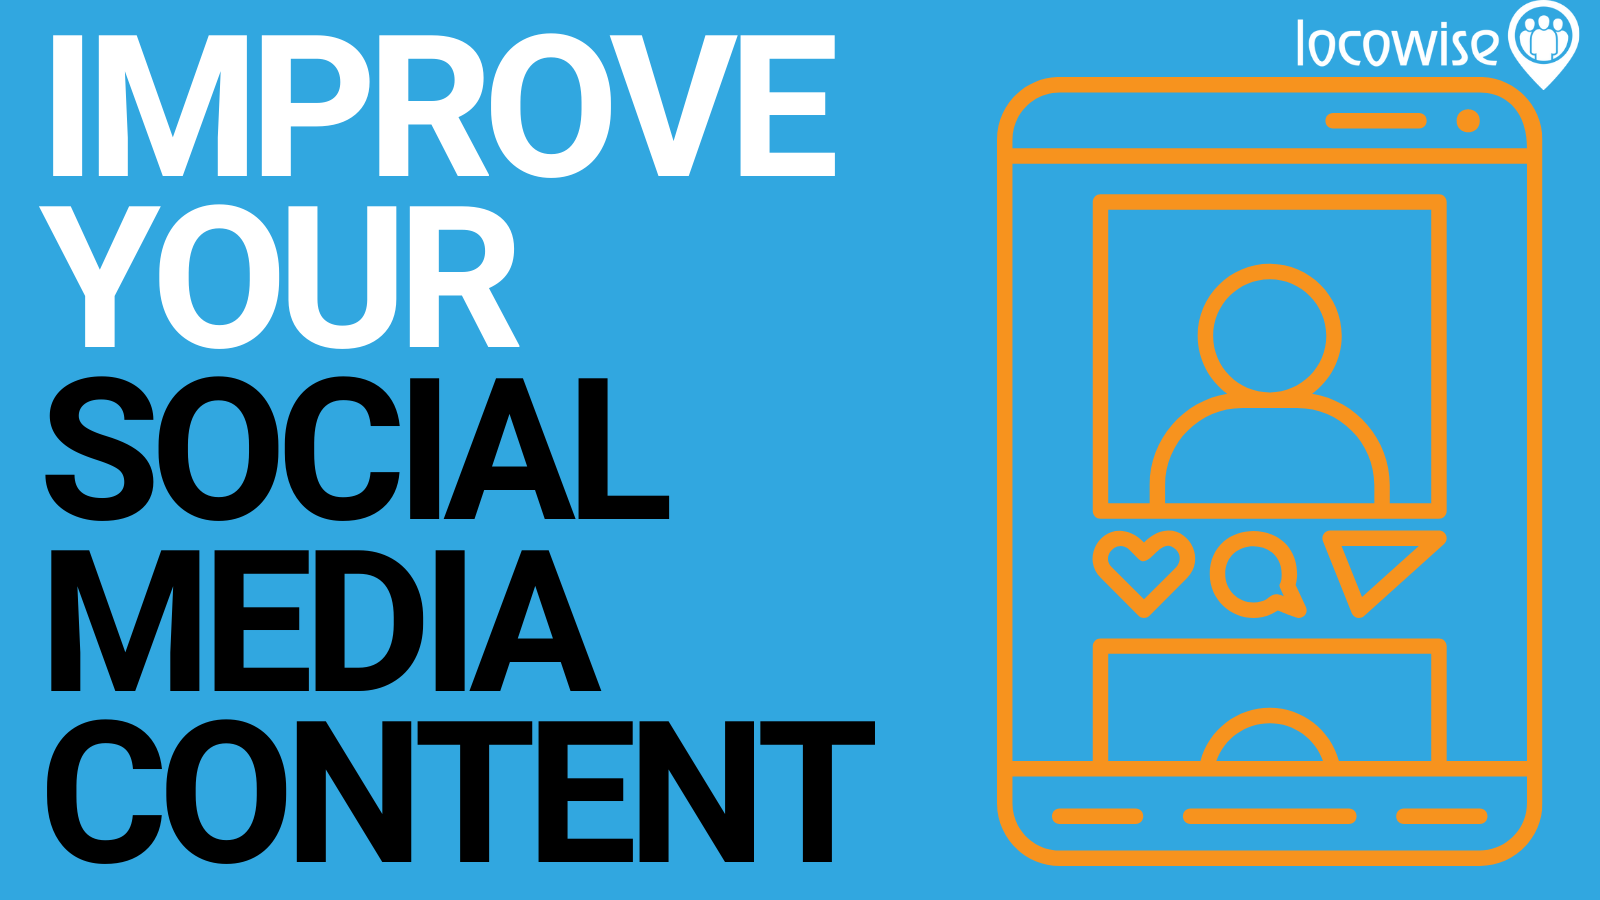 How to Improve Your Social Media Content